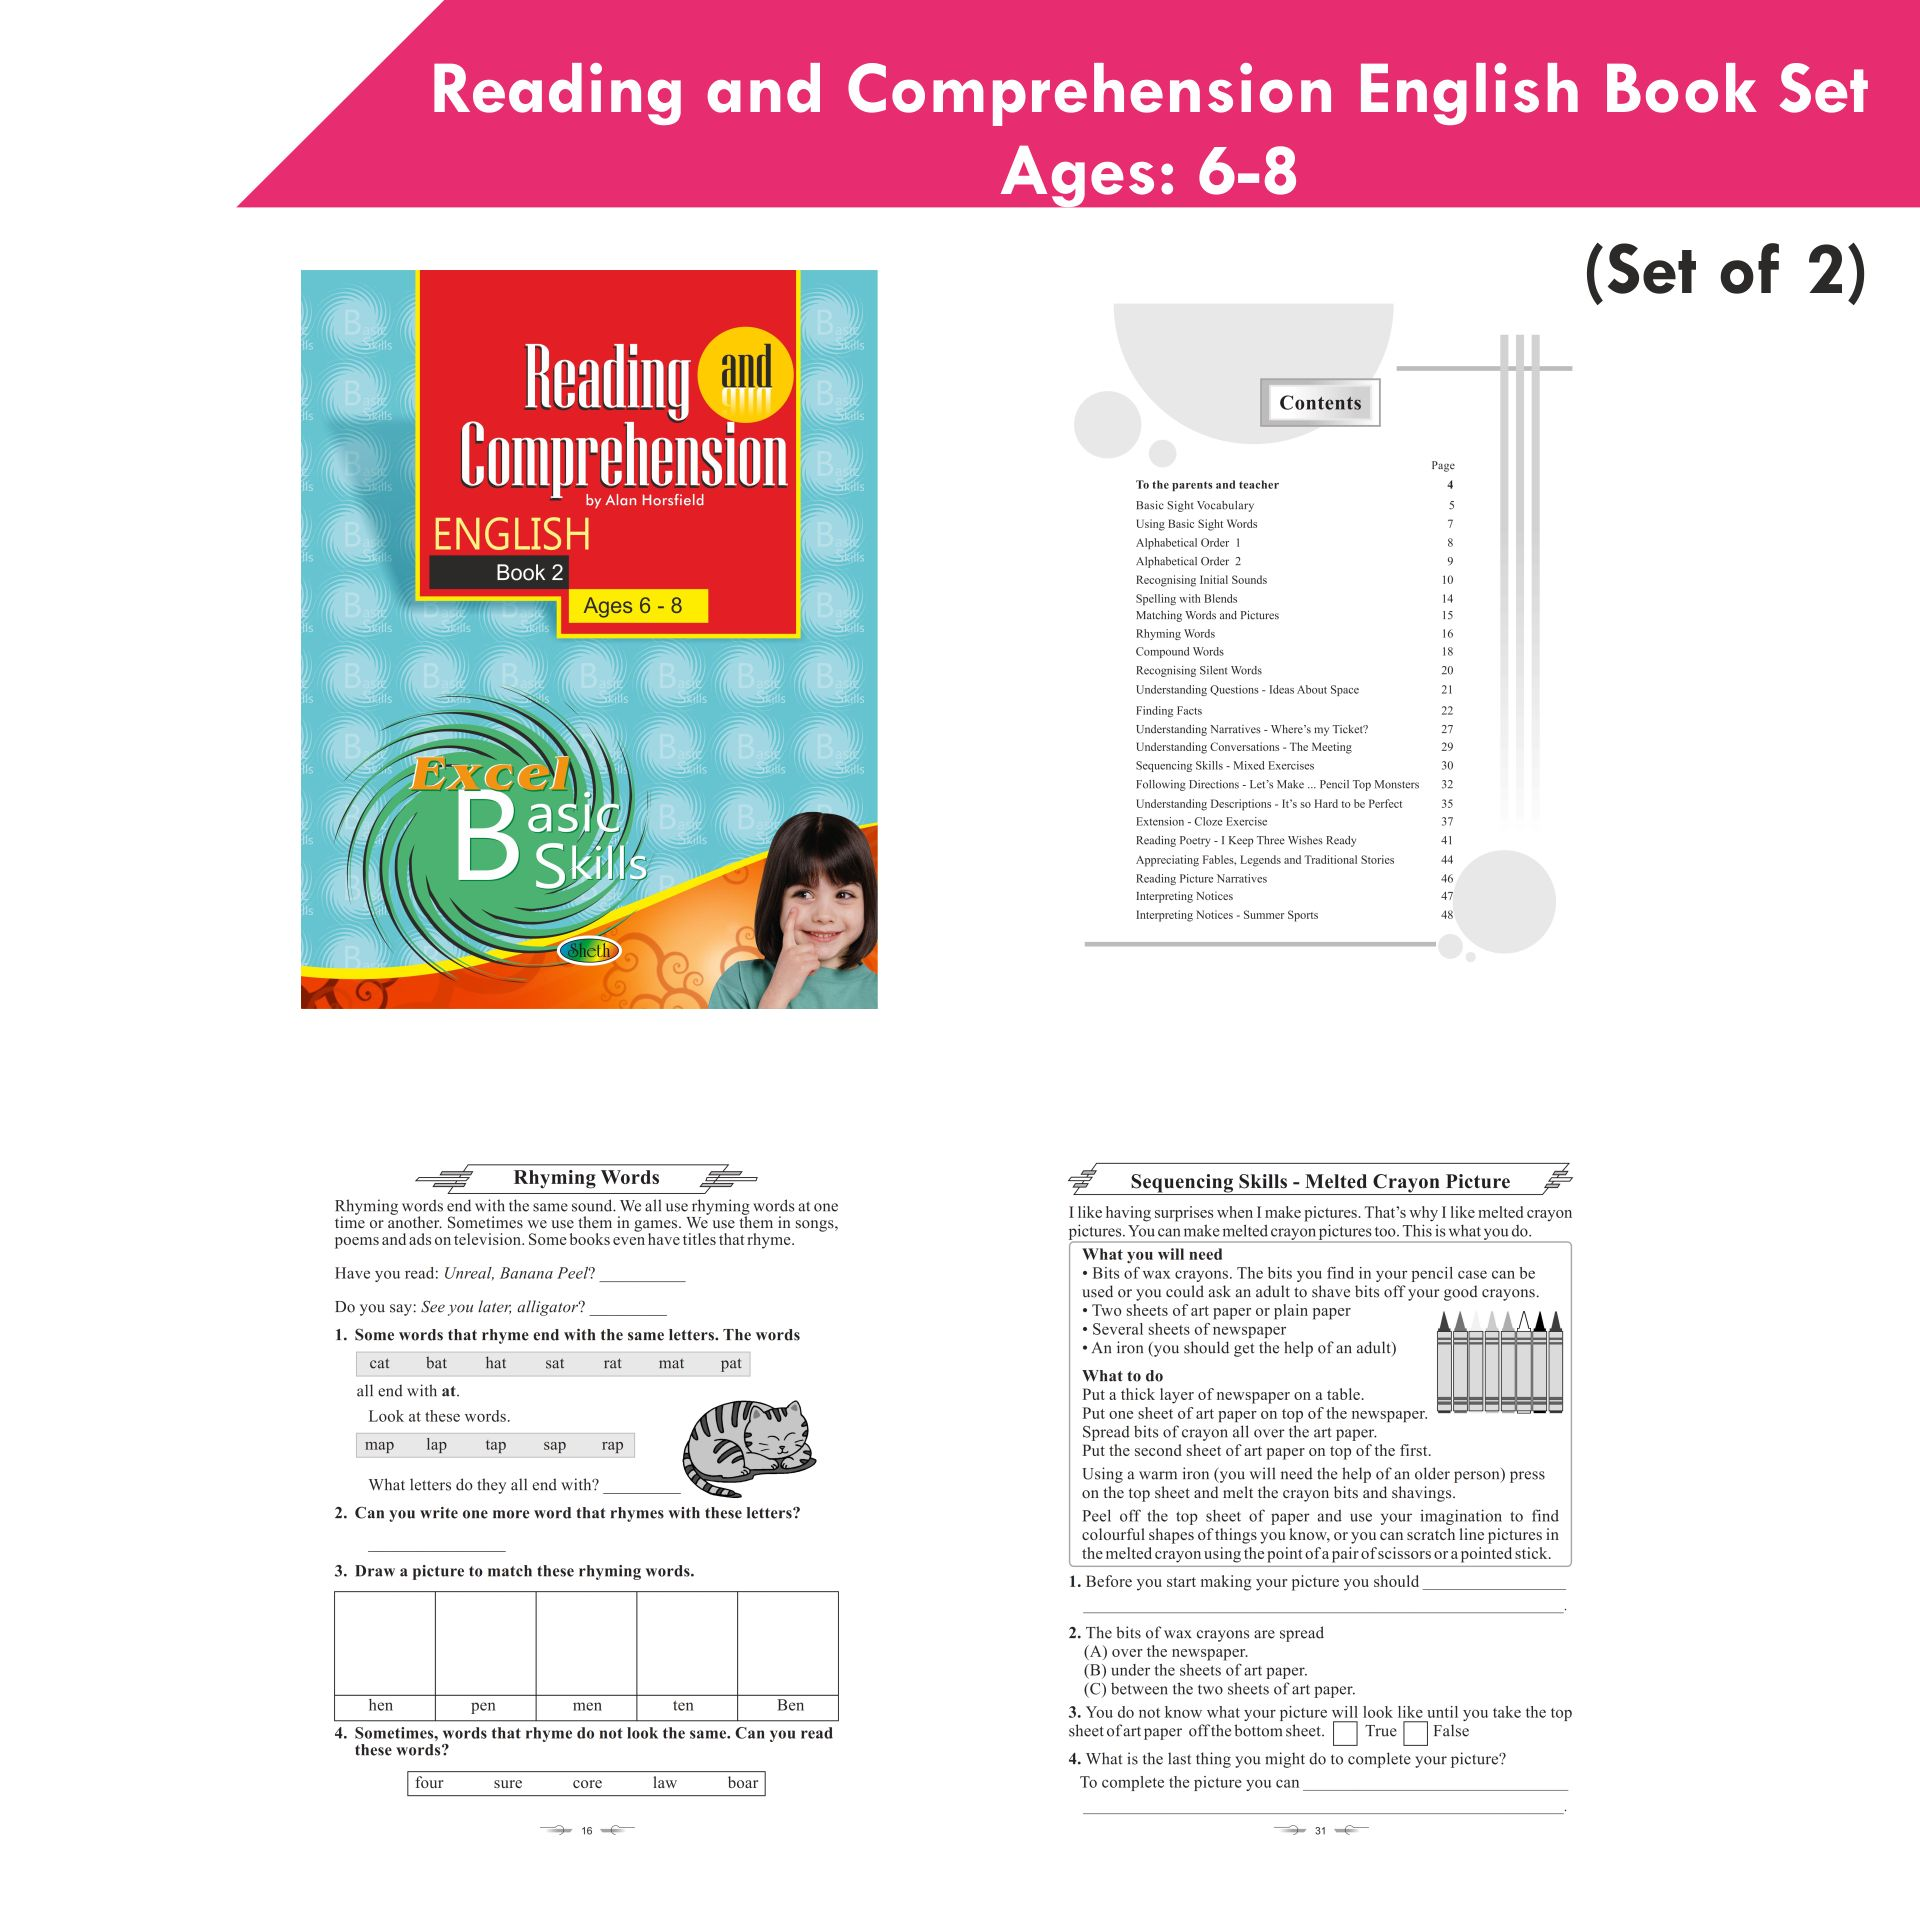 Excel Reading and Comprehension English Book Set 1 Set of 2 4